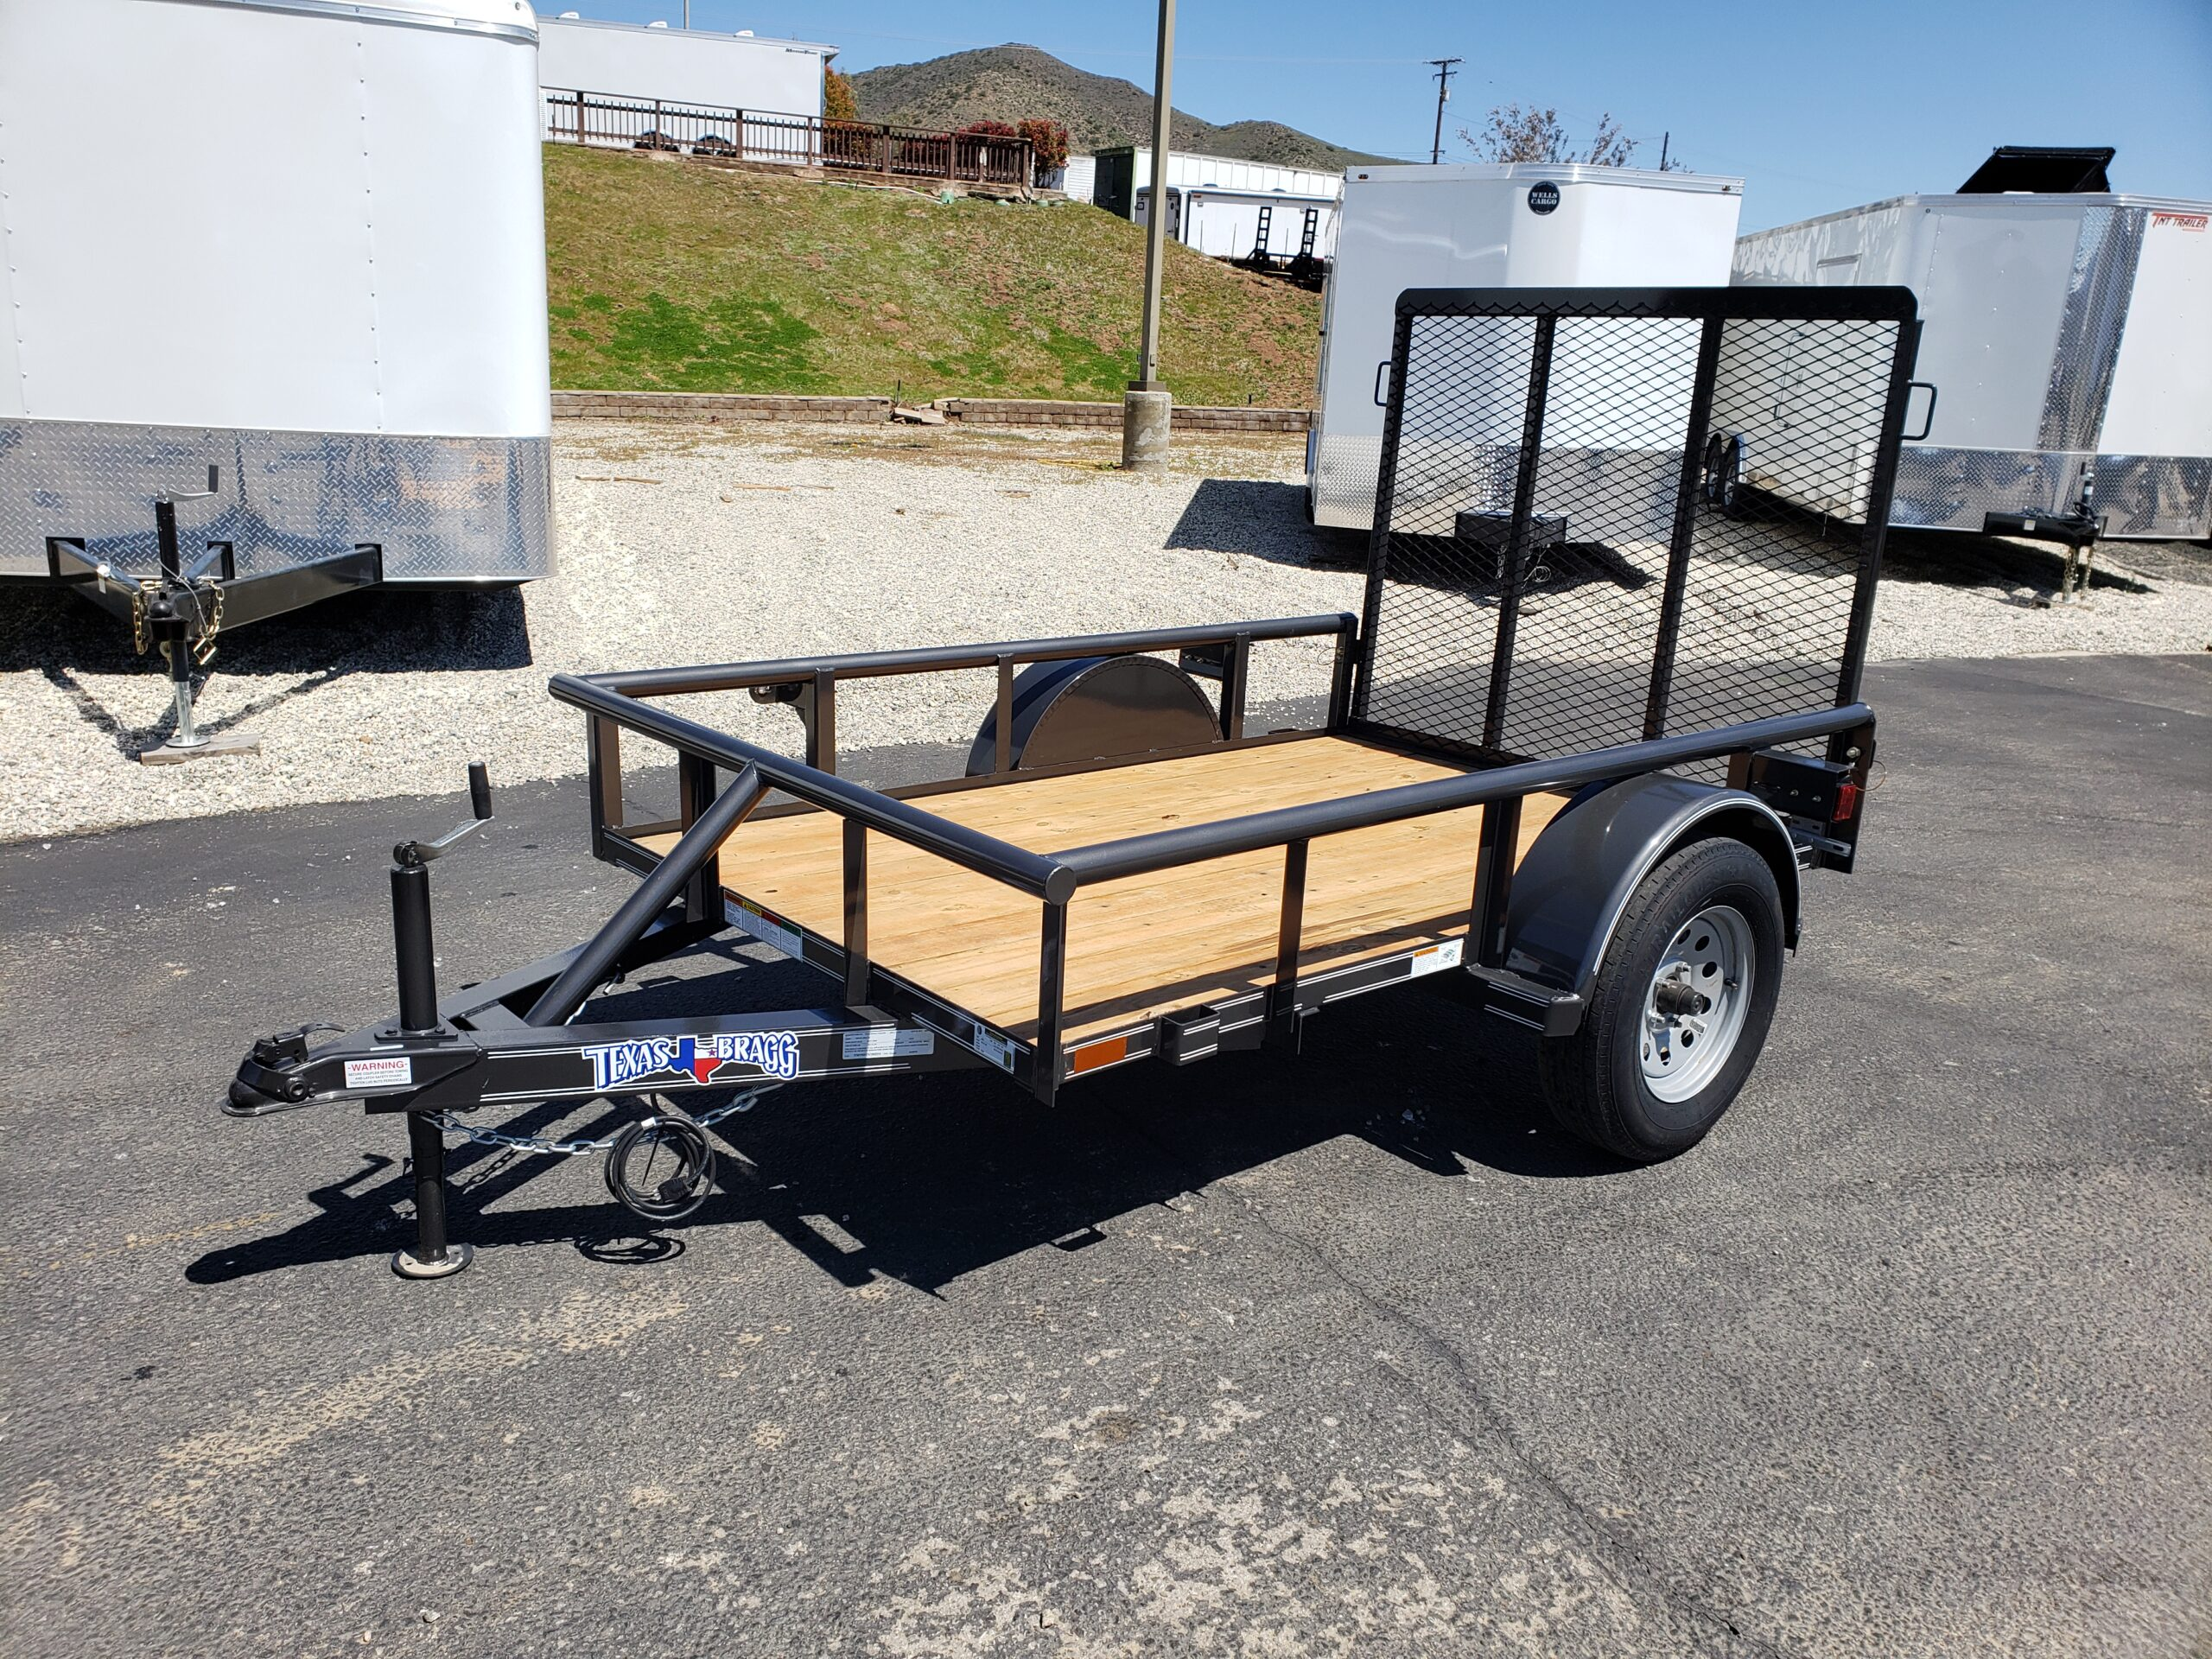 Texas Bragg 5x8 Ramp - Driver side front 3/4 view